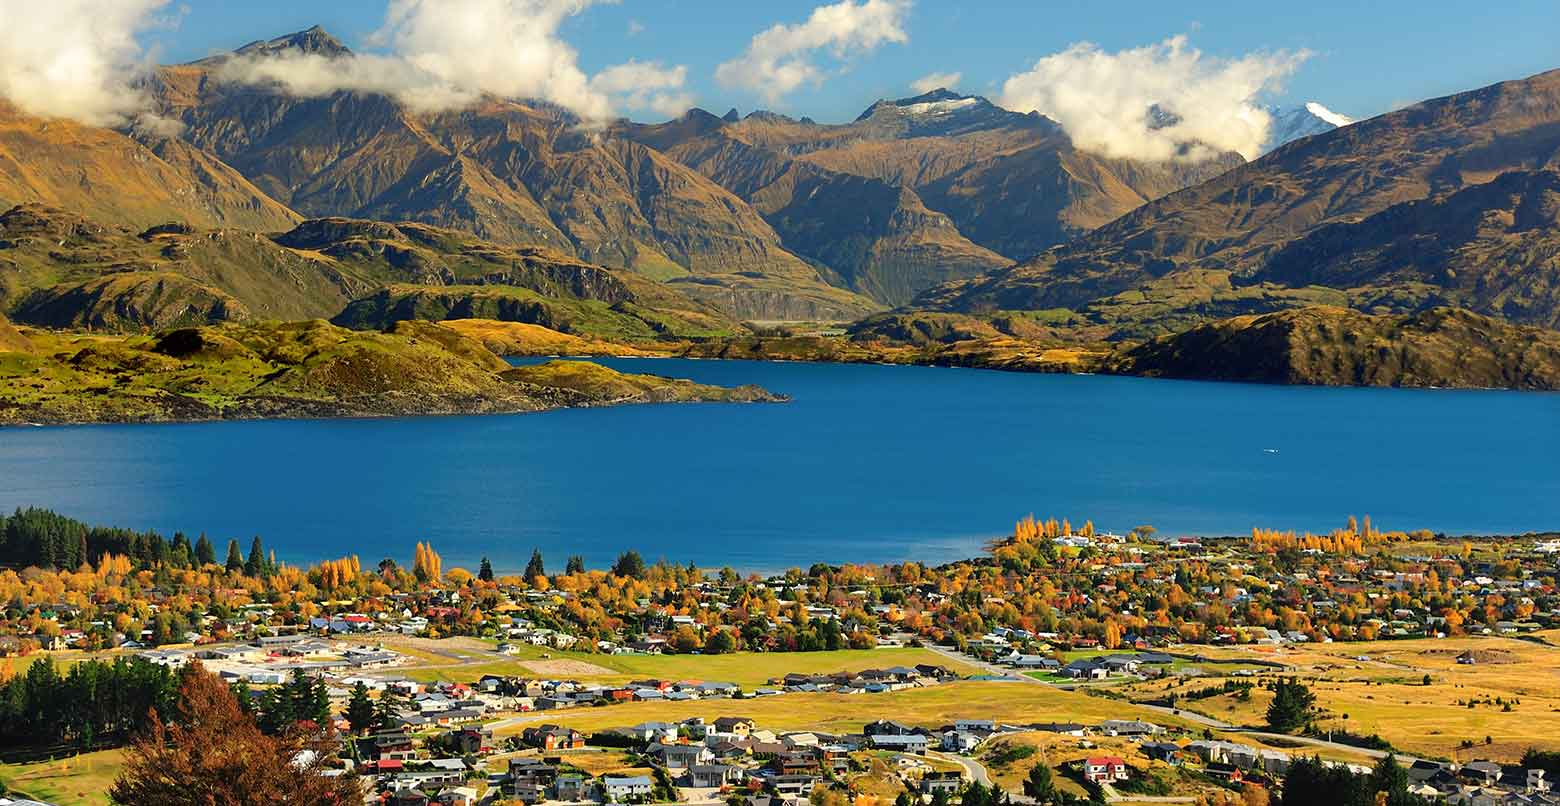 Beautiful photo of Lake Wanaka, New Zealand